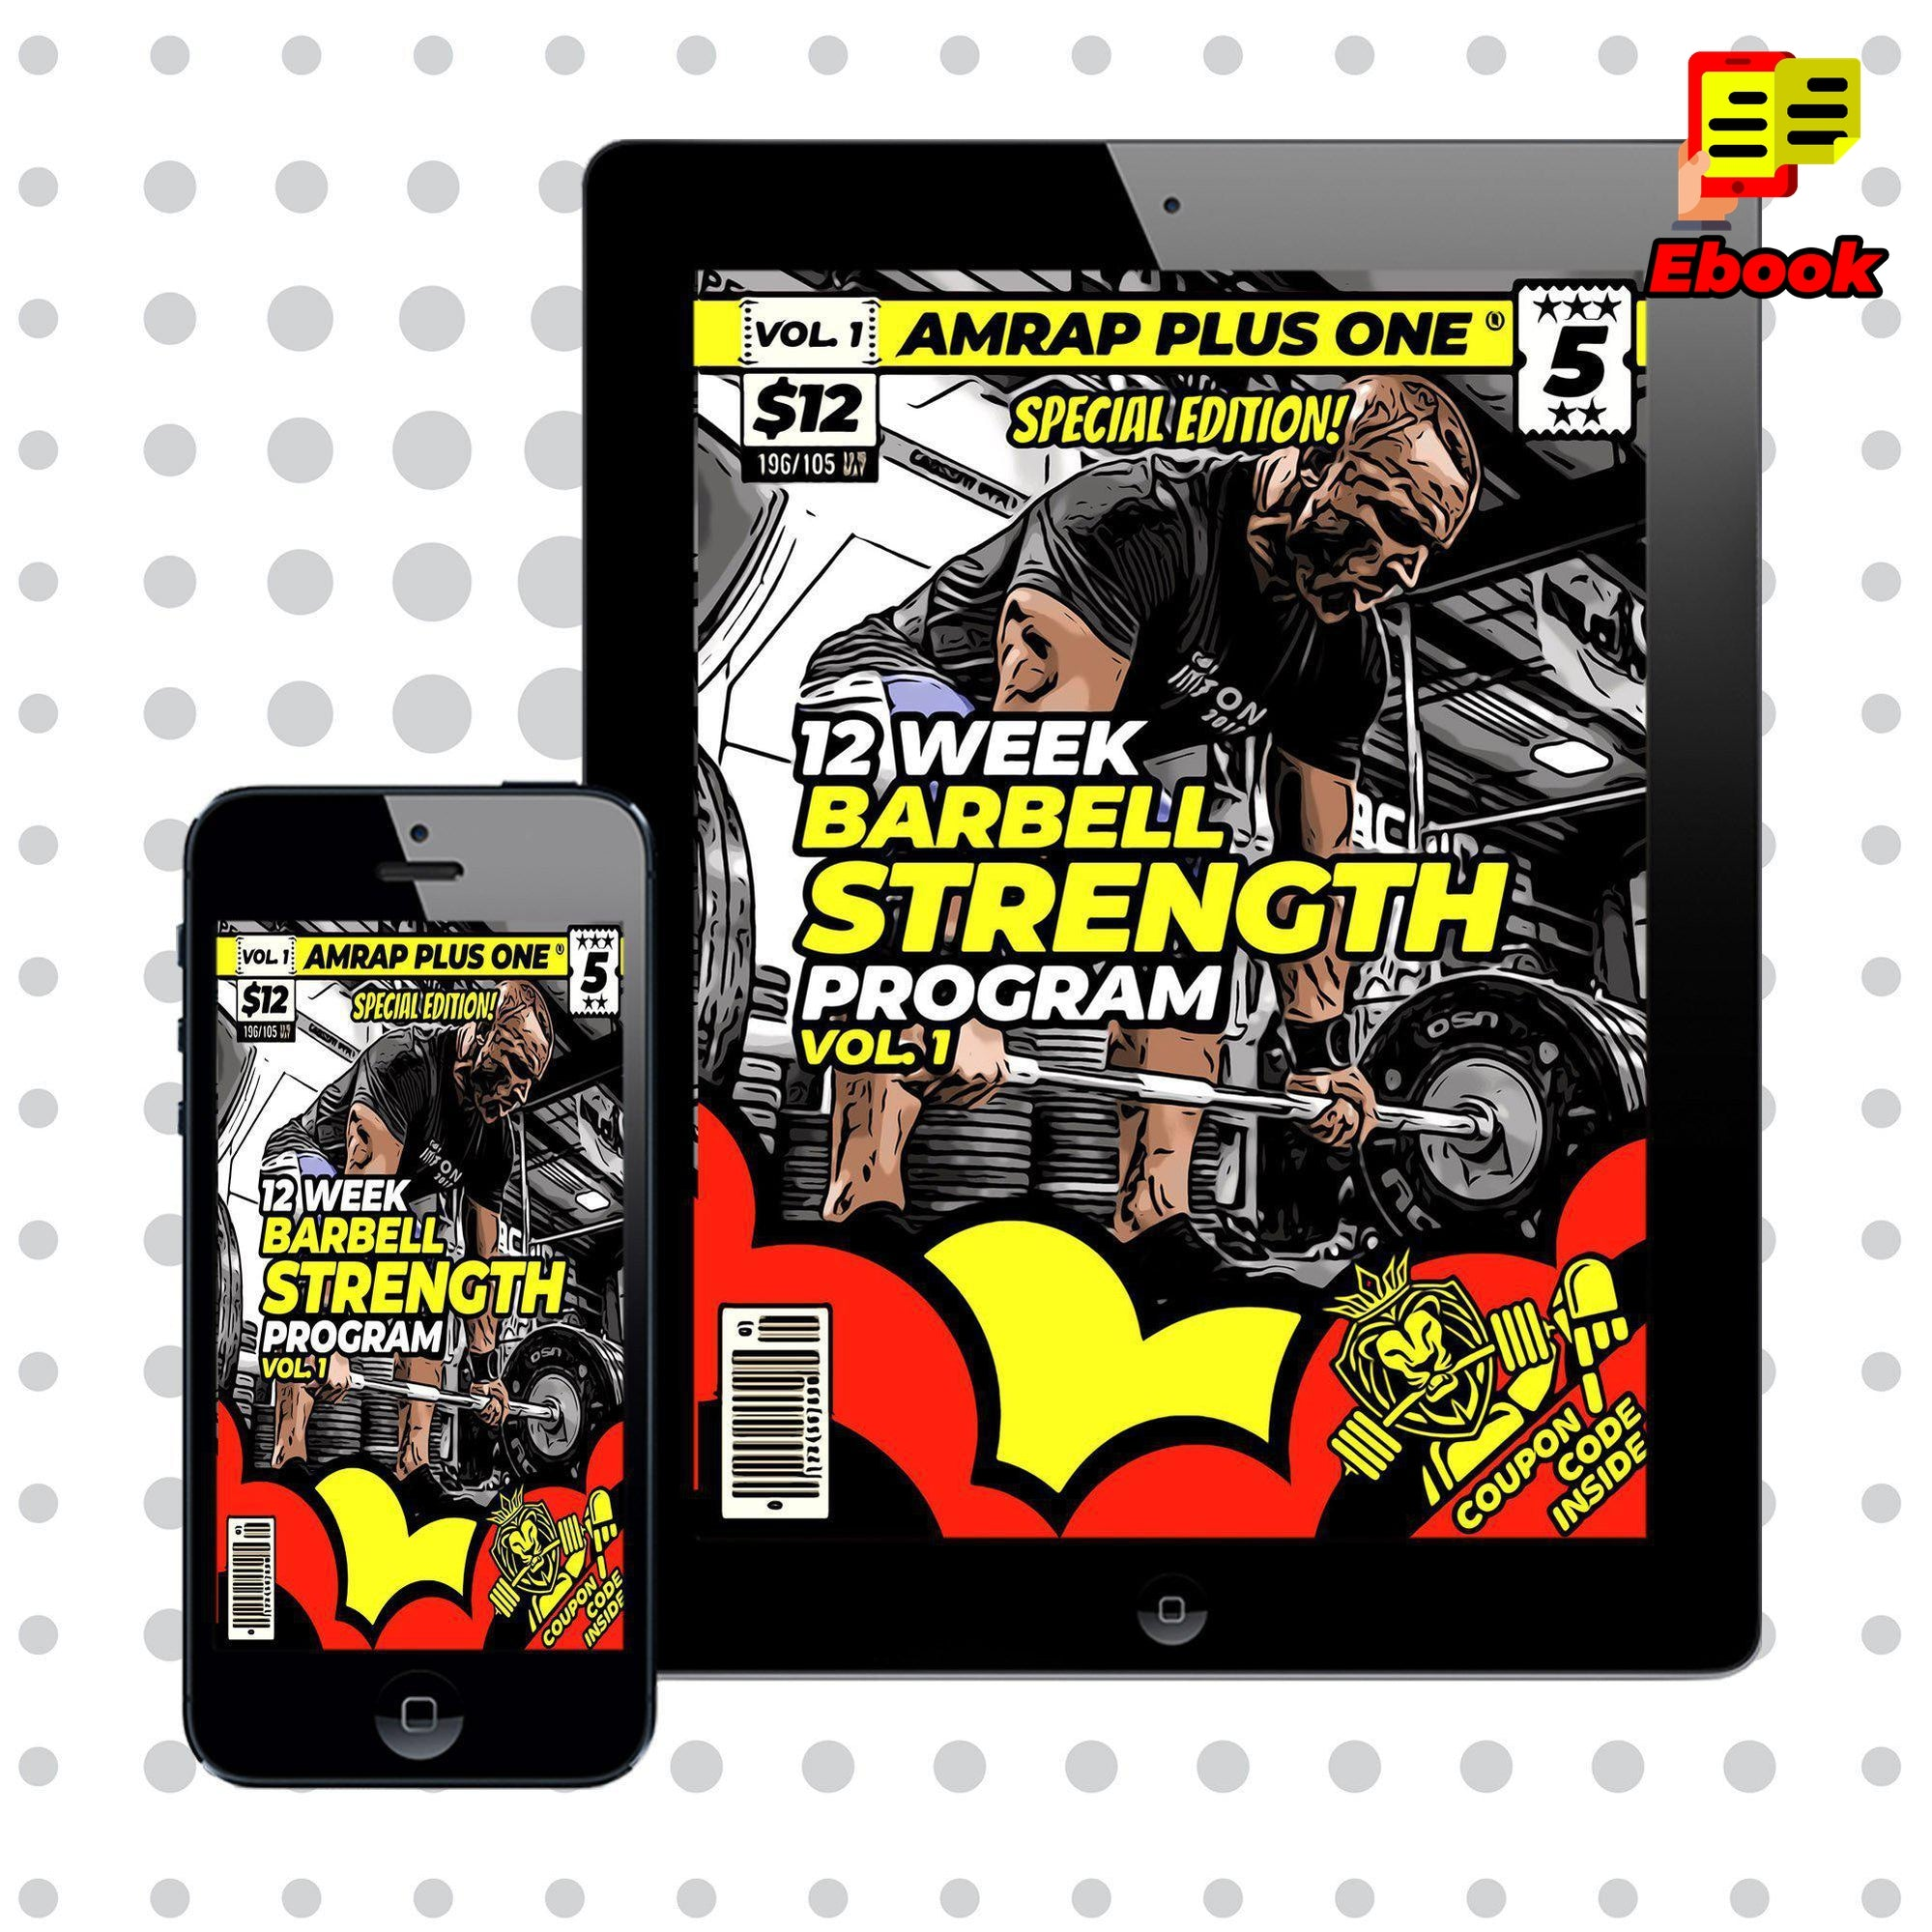 12 Week 'Barbell Strength' Program Vol. 1 - AMRAP Plus One